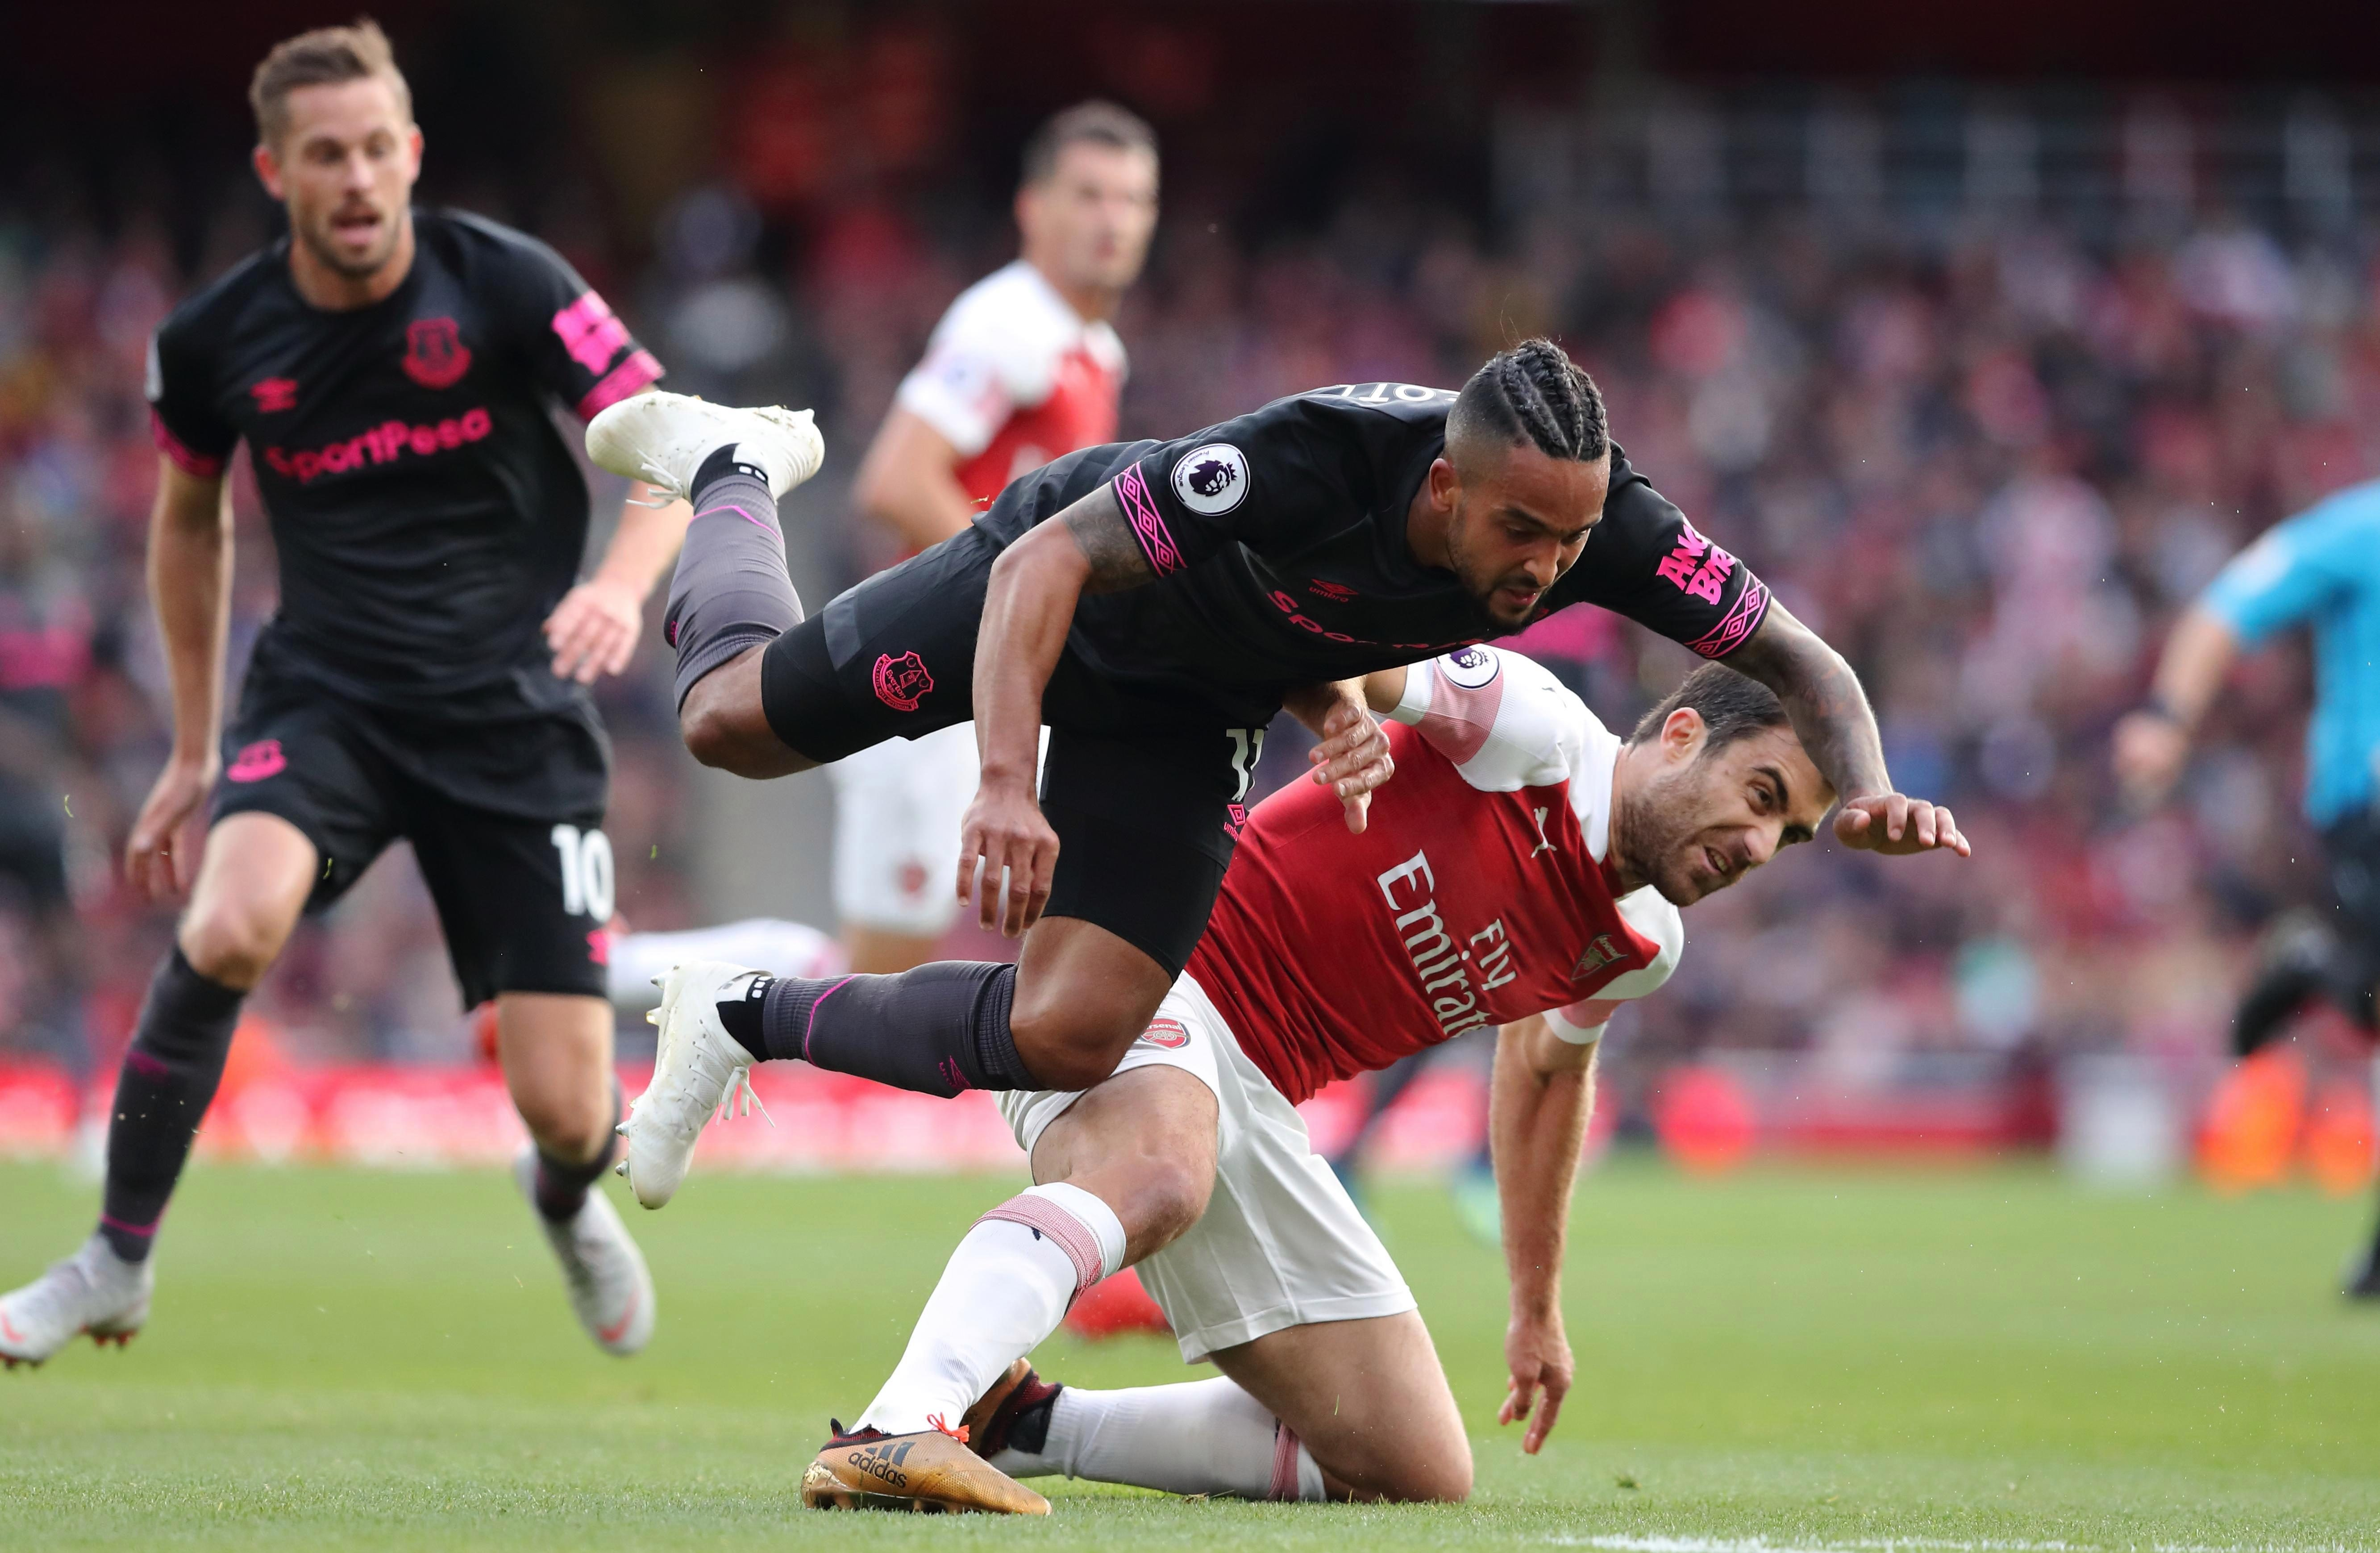 Crunching Theo Walcott. One way to endear yourself to the fans